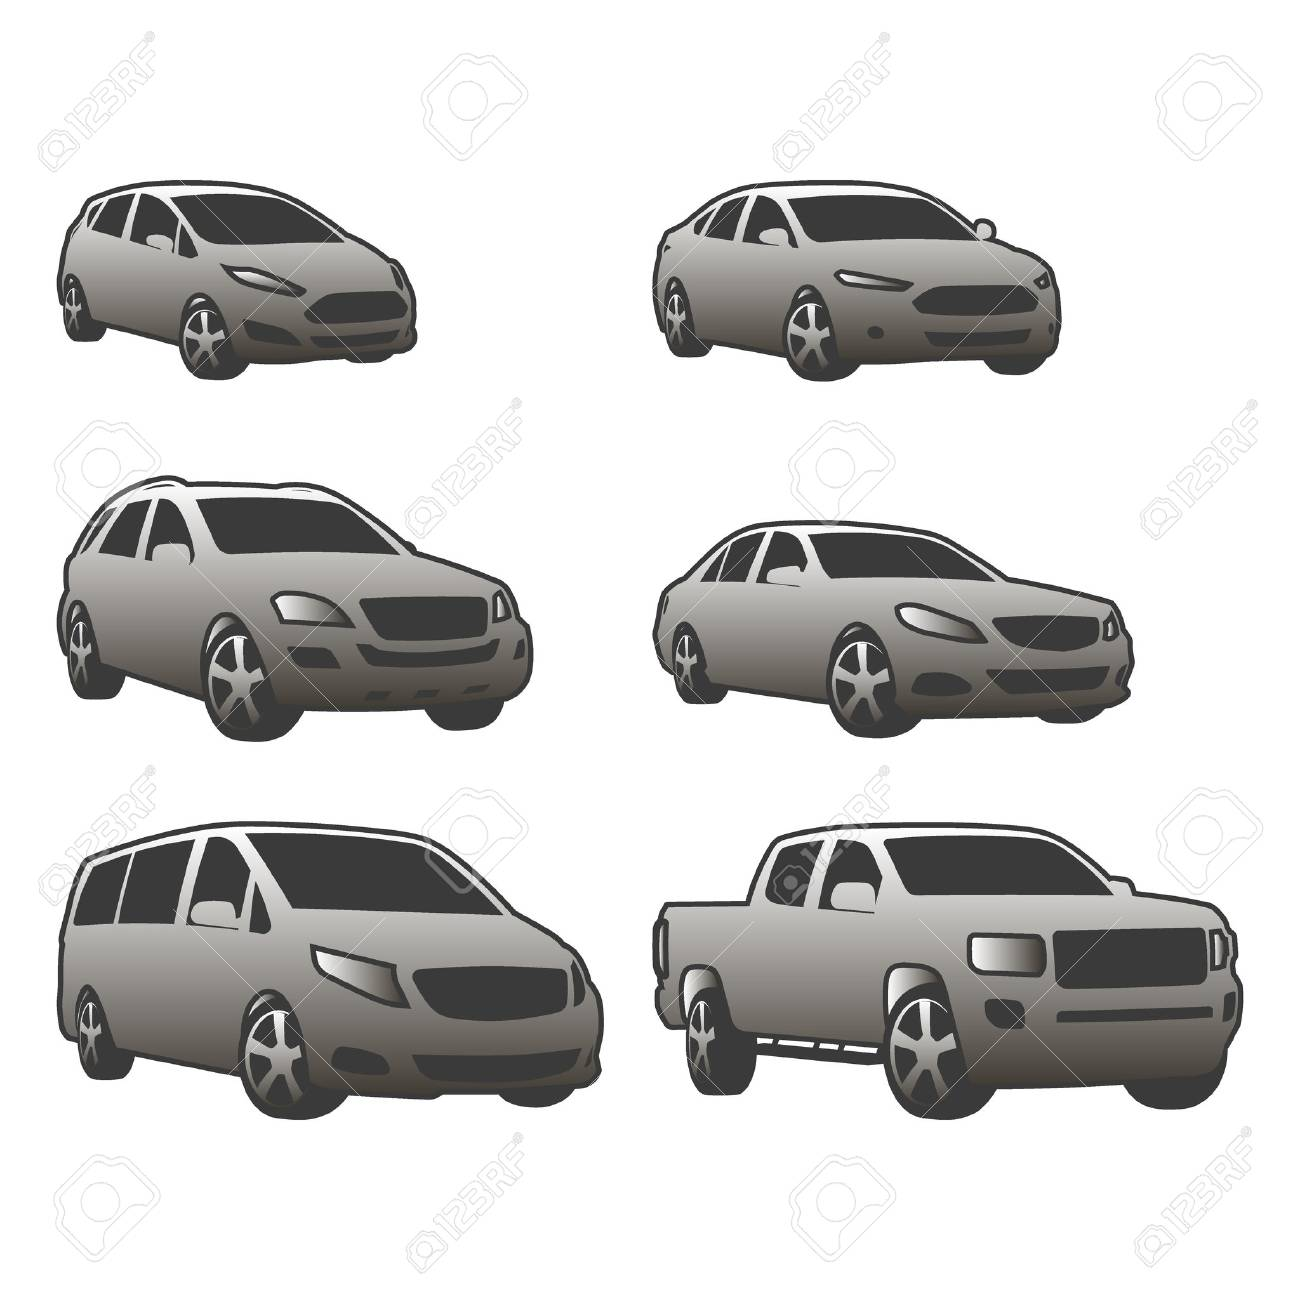 Vector set of various city urban traffic vehicles icons - 62152231